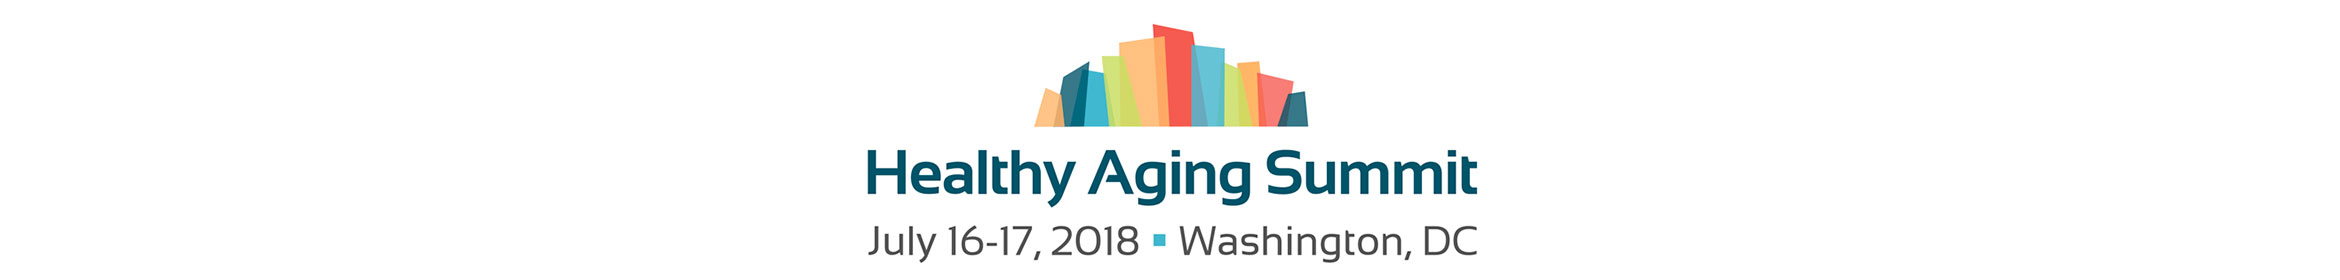 Healthy Aging Conference Main banner